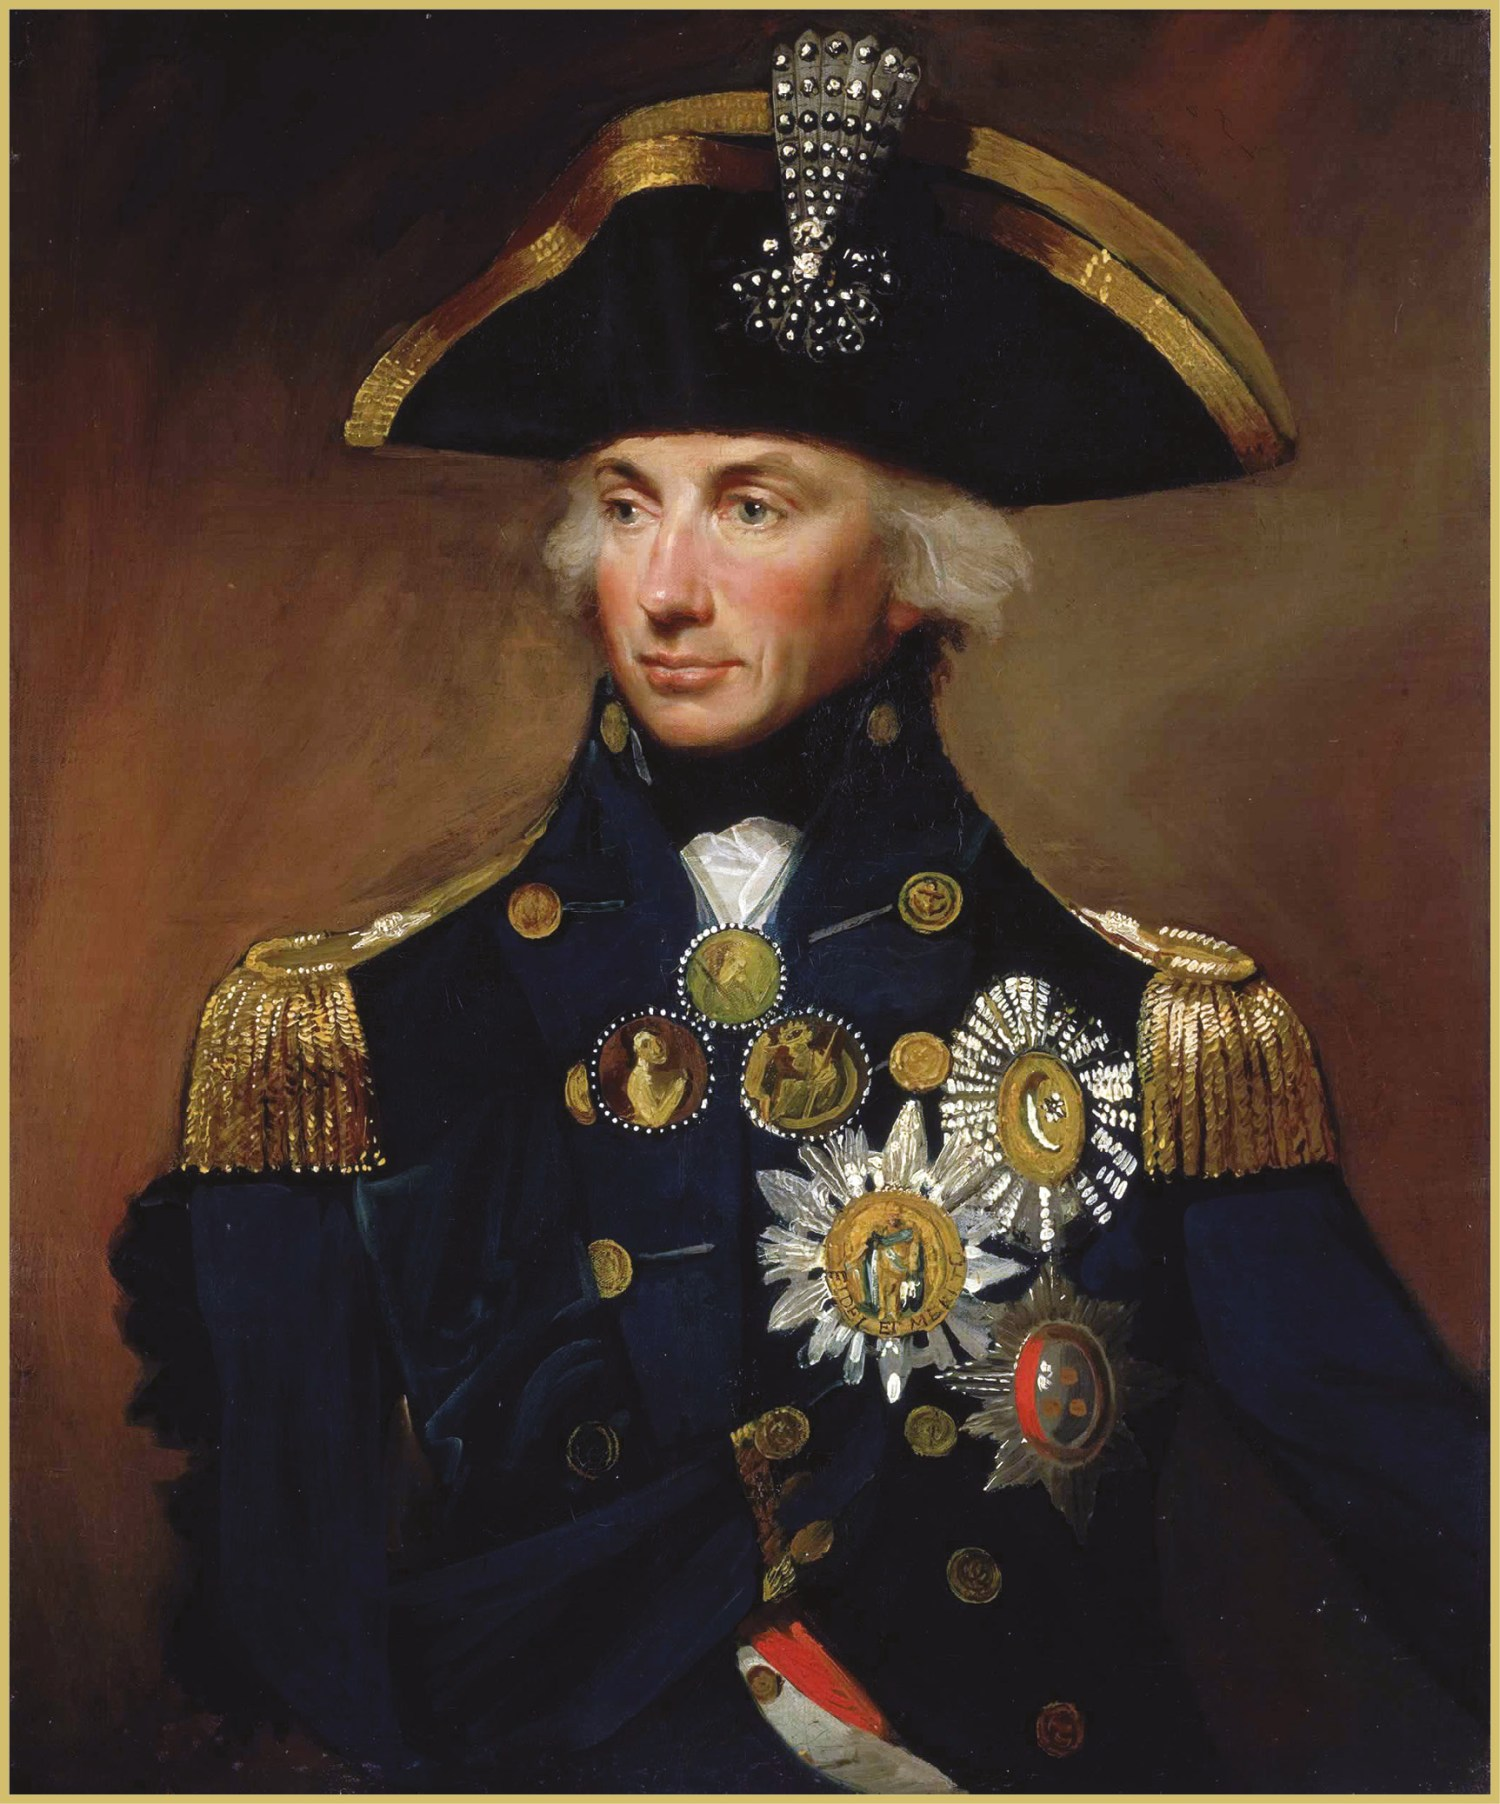 OPPOSITE Admiral Lord Horatio Nelson (1758-1805), painted in 1800.